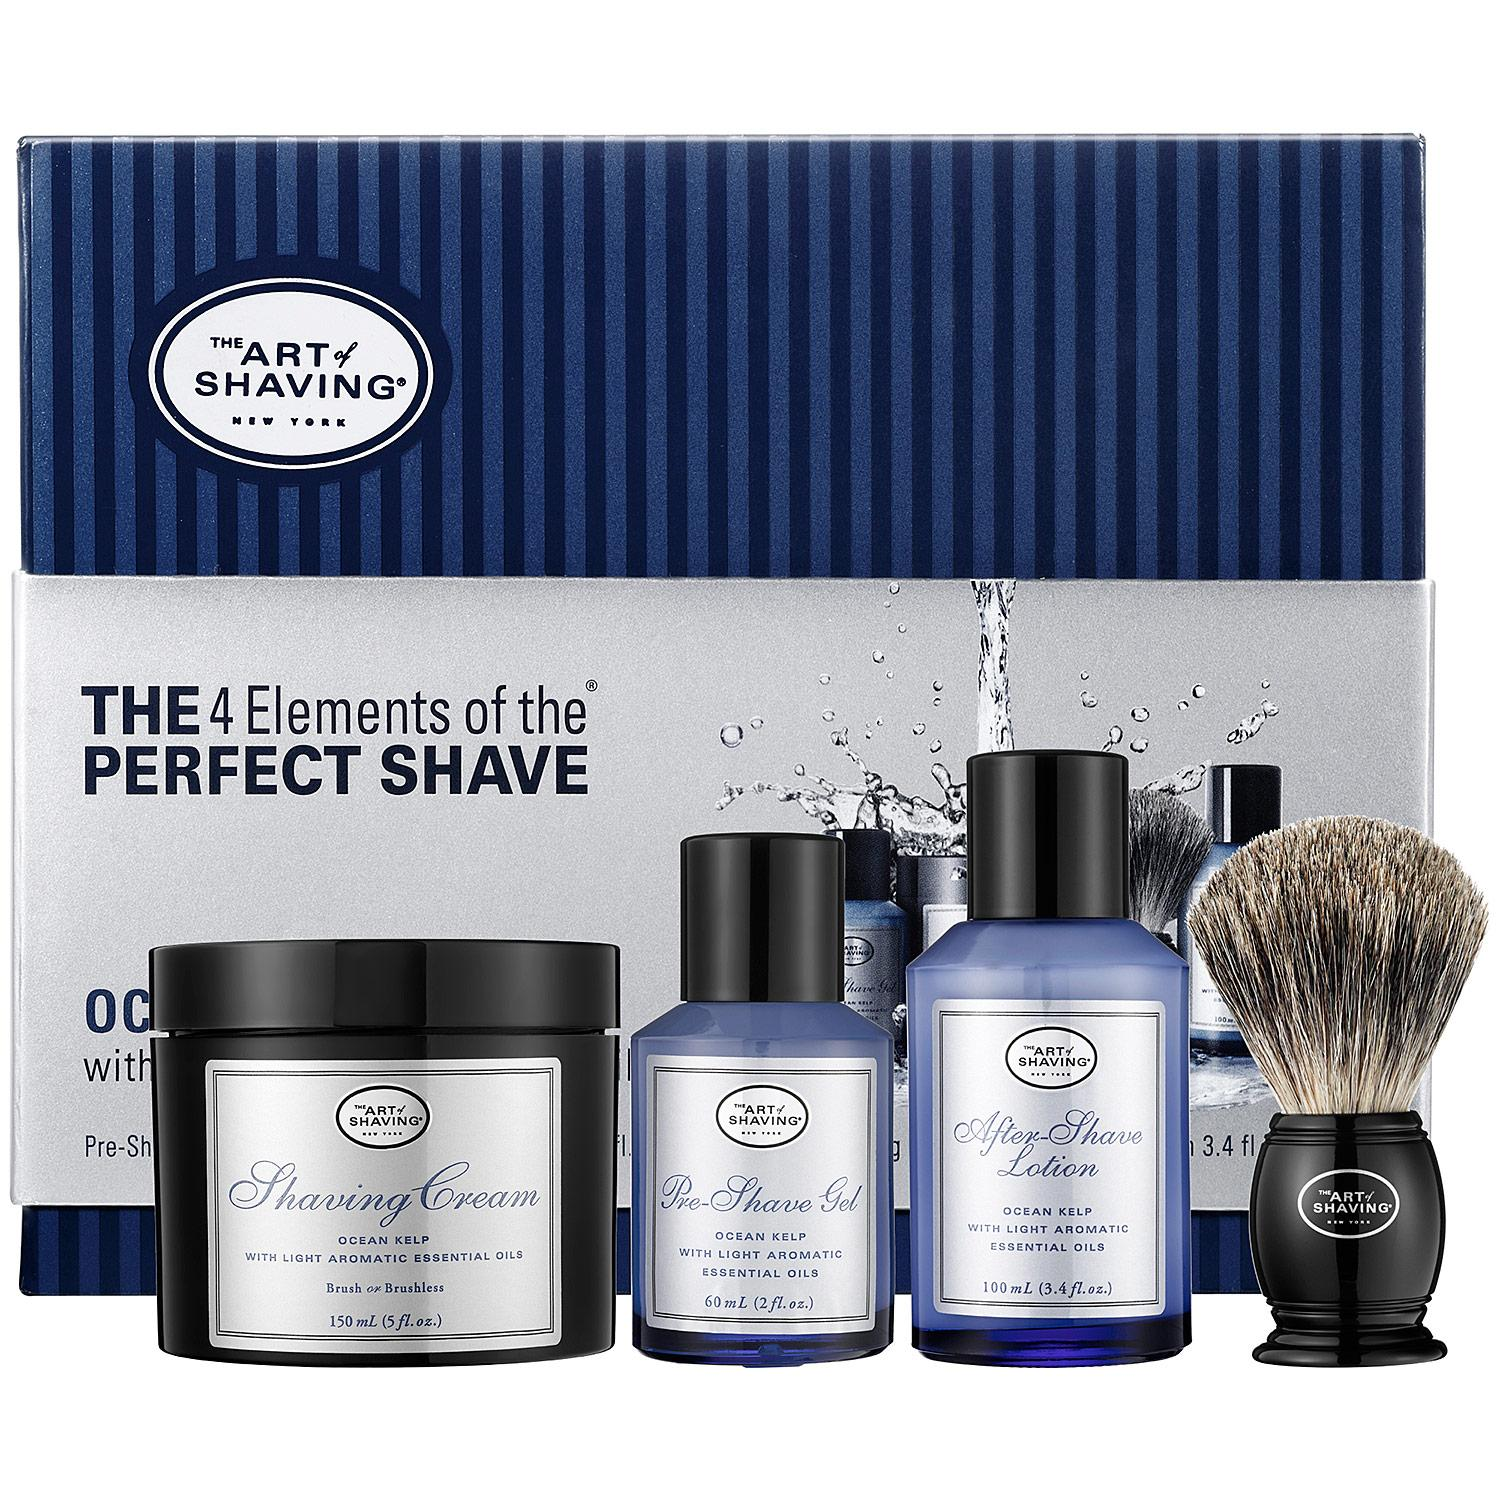 The 4 Elements of the Perfect Shave™ – Ocean Kelp